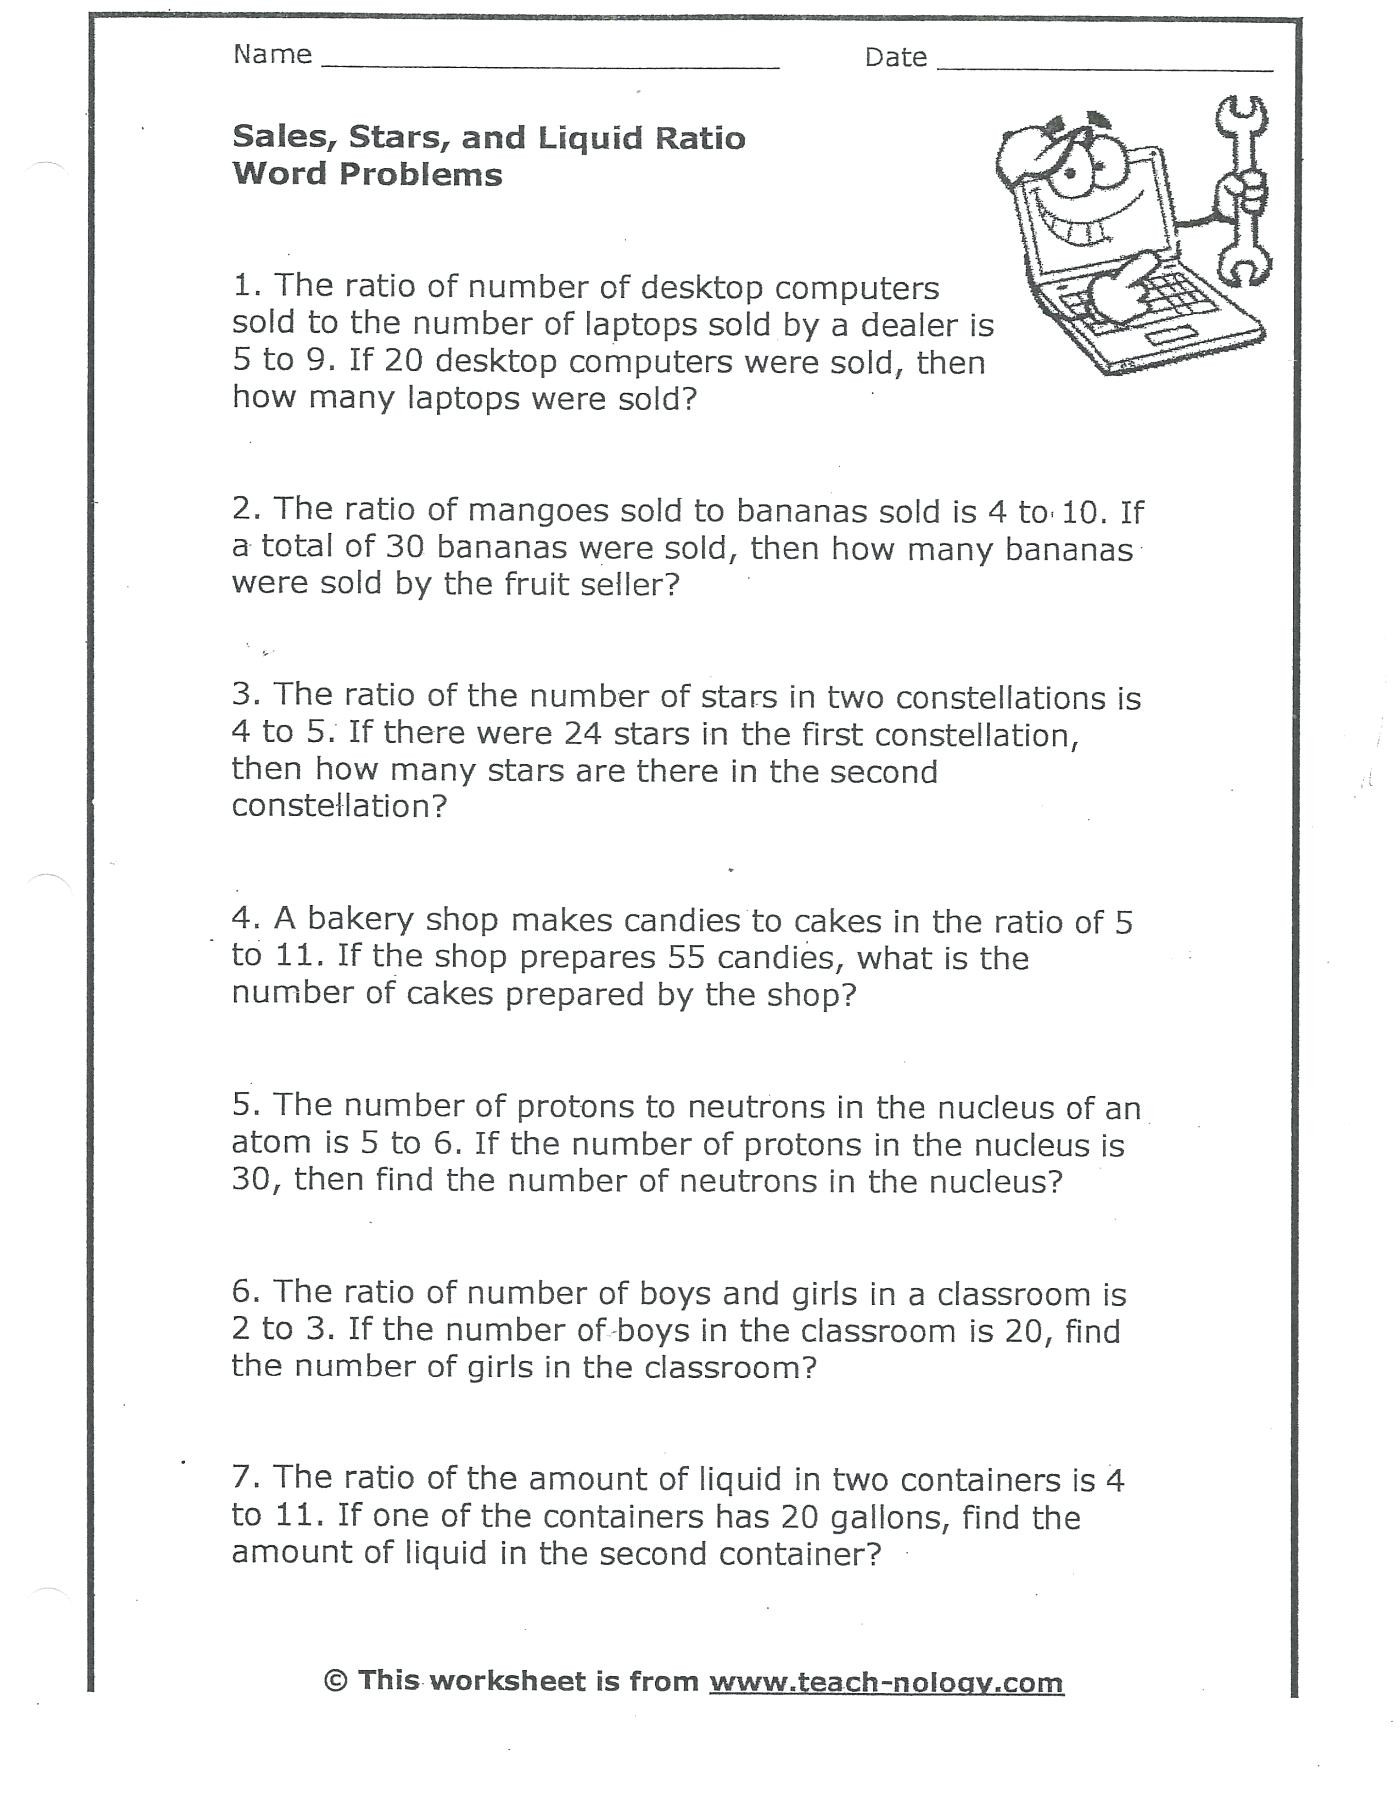 Ratio Worksheets 6th Grade Ratios and Rates Worksheet Promotiontablecovers